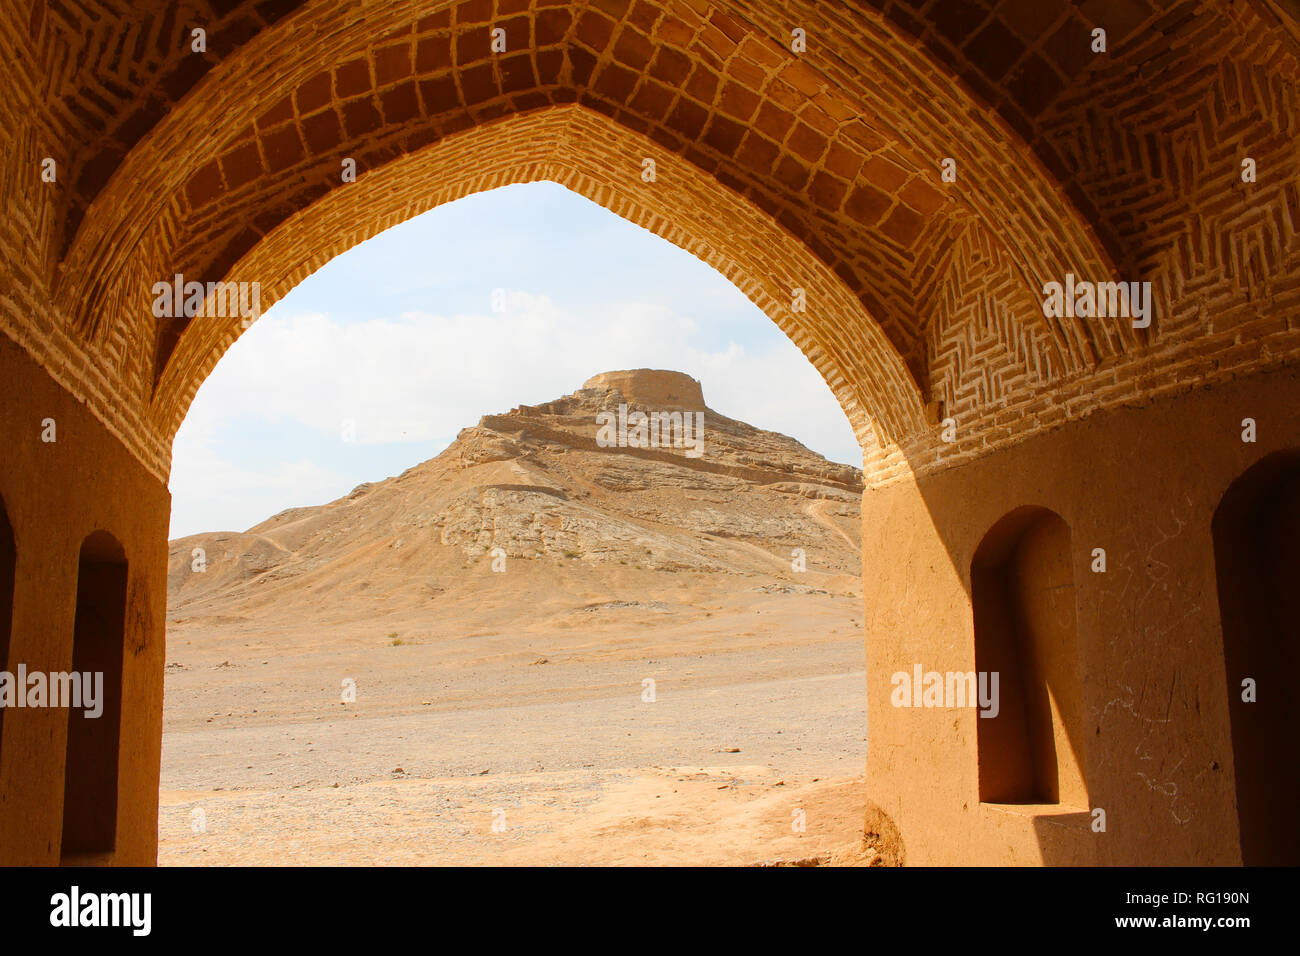 Zoroastrian Tower of Silence and wind towers in Yazd, Iran - Stock Image